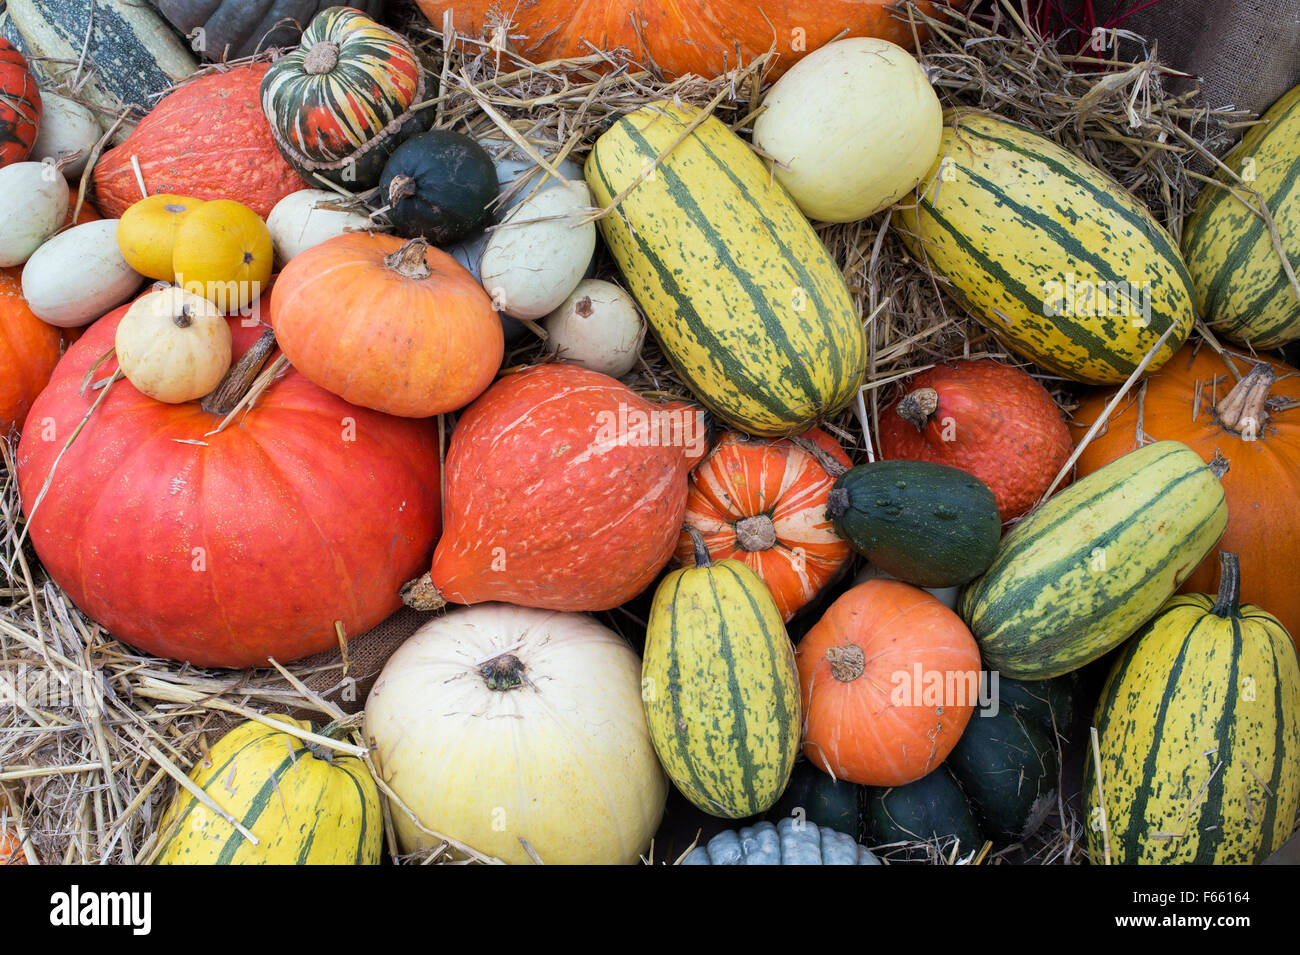 Pumpkin, Squash and Gourd Display - Stock Image